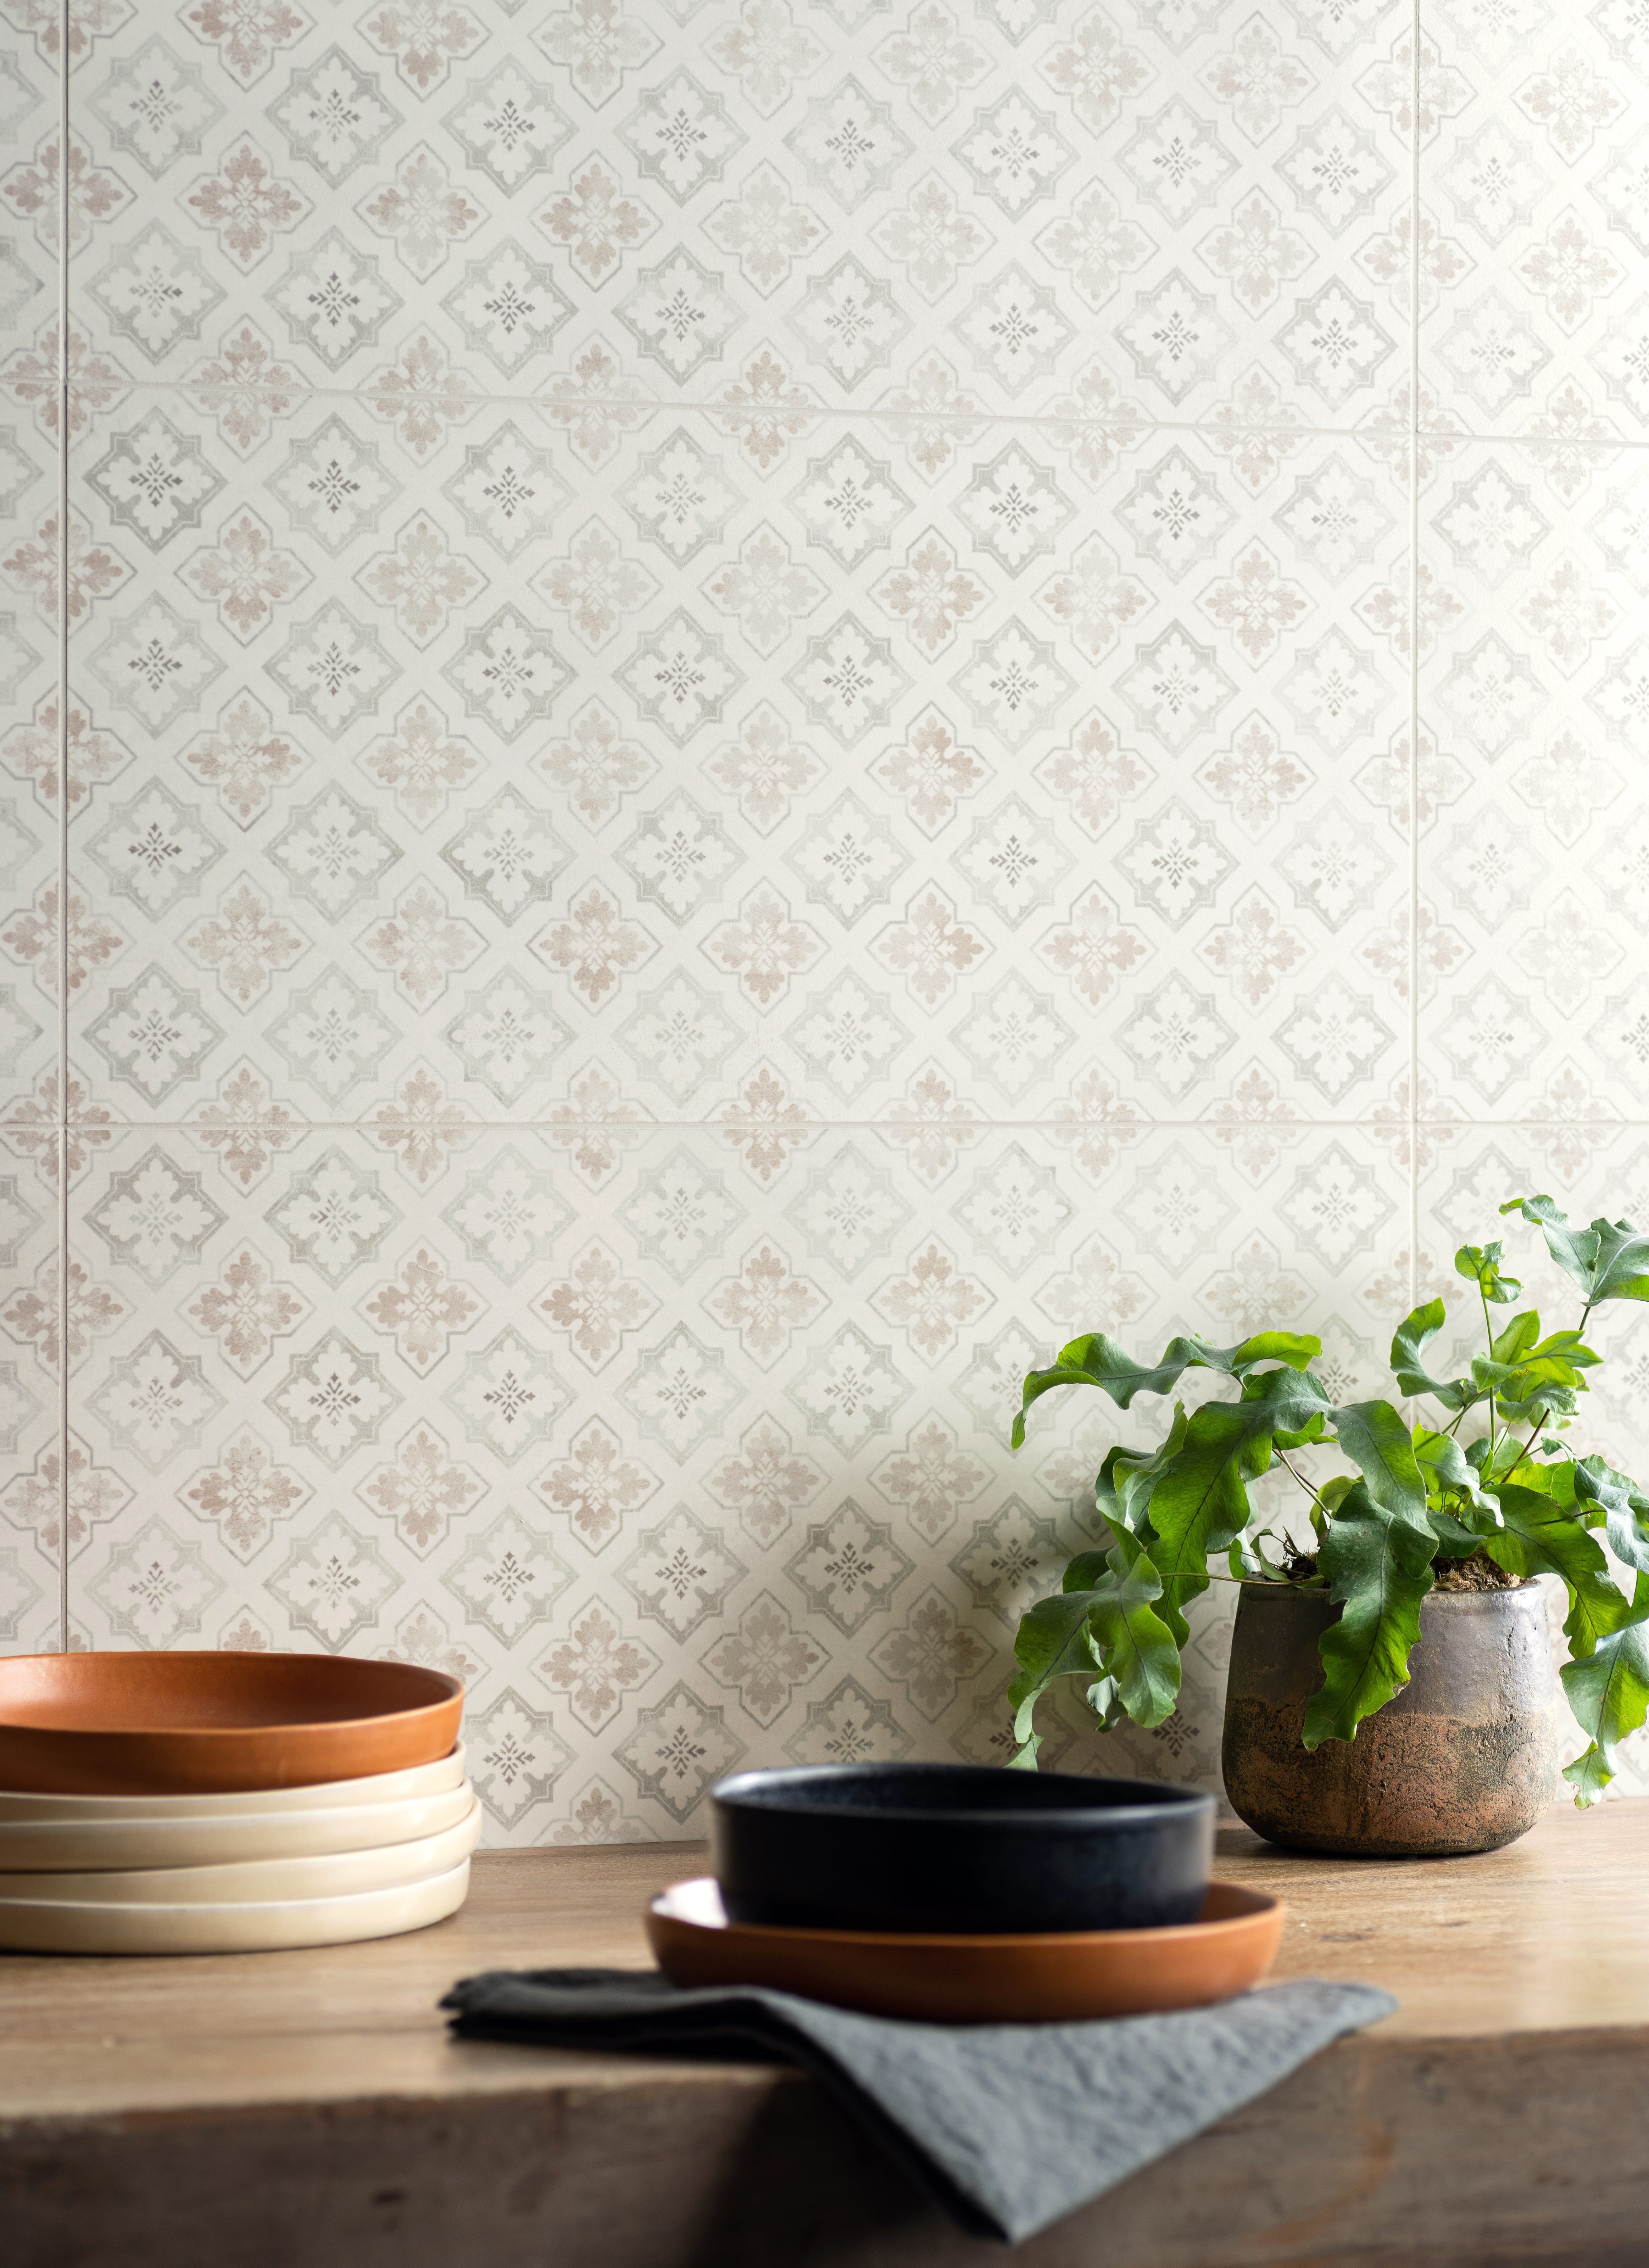 malmo-taupe-wall-tiles-from-original-style